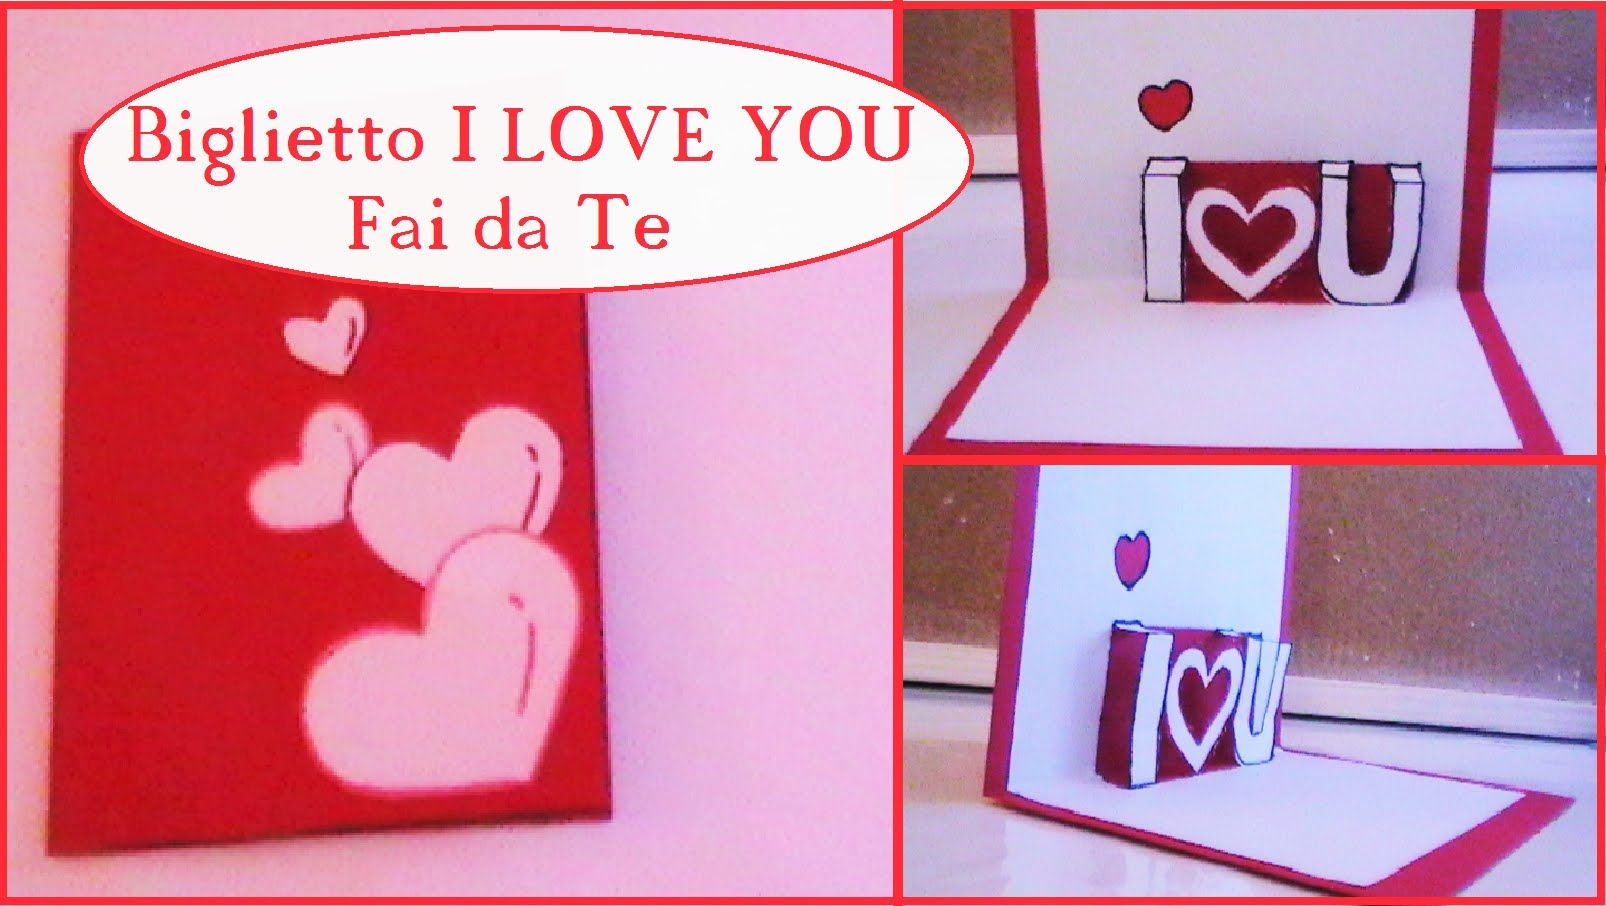 Biglietto I LOVE U - 3D - Fai da te - DIY love card